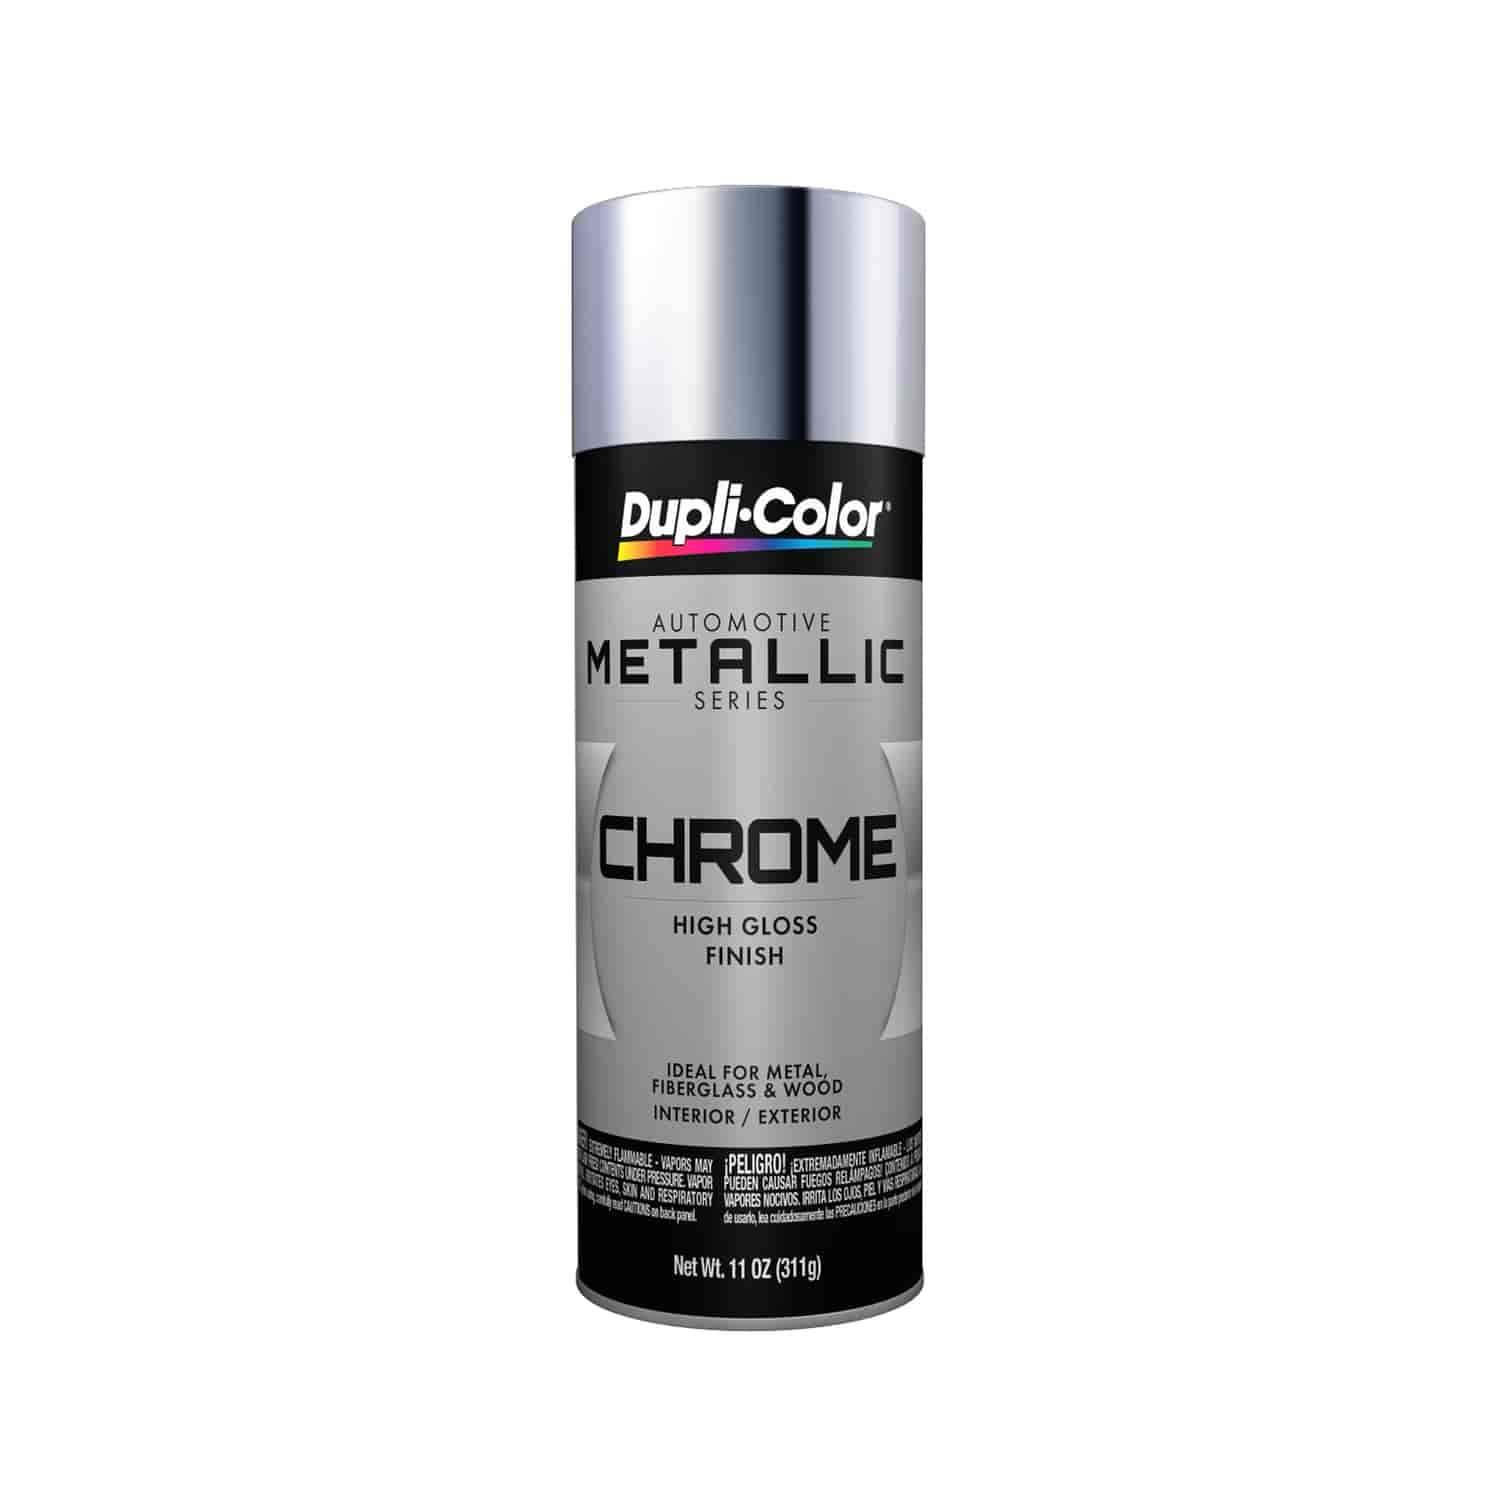 Duplicolor CS101 - Duplicolor Effex Paint & Automotive Metallic Paint